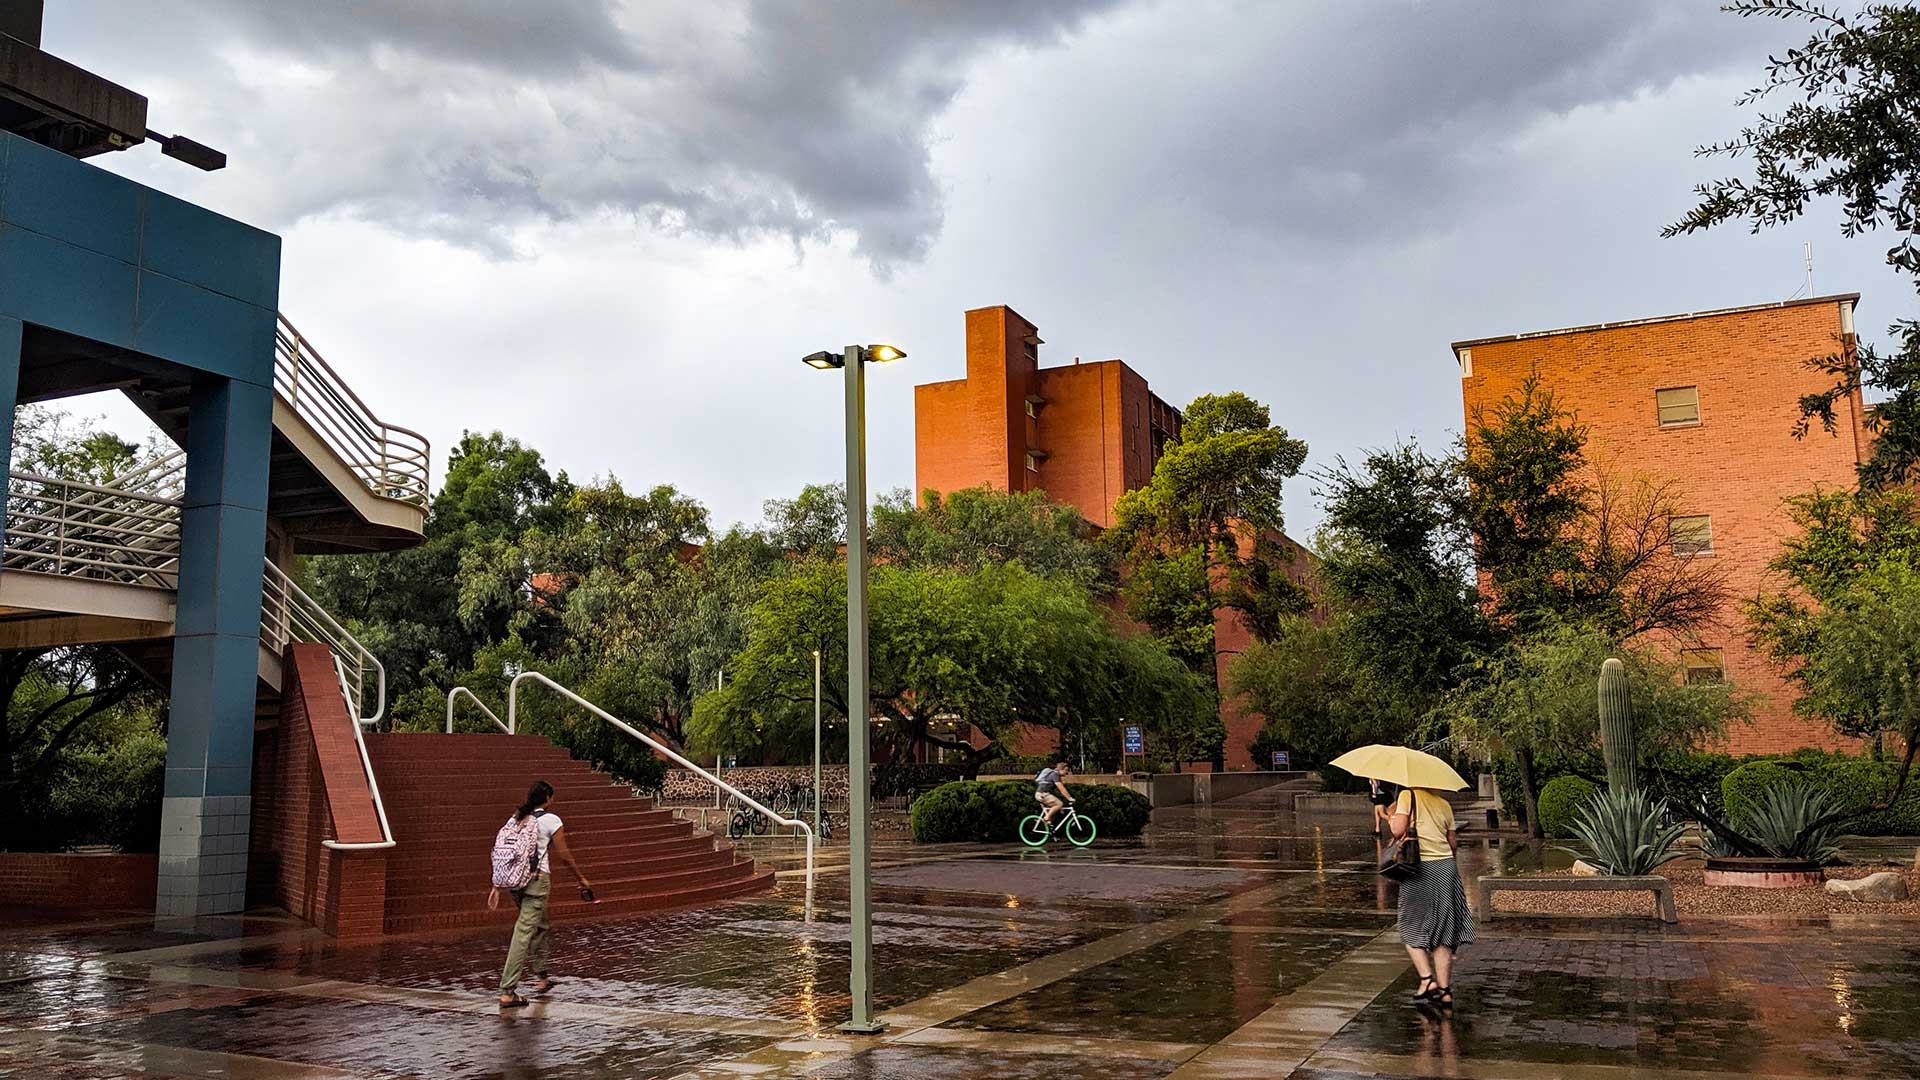 People on the University of Arizona campus take advantage of a lull in a summer rain storm to get to where they're going, Aug. 28, 2019.